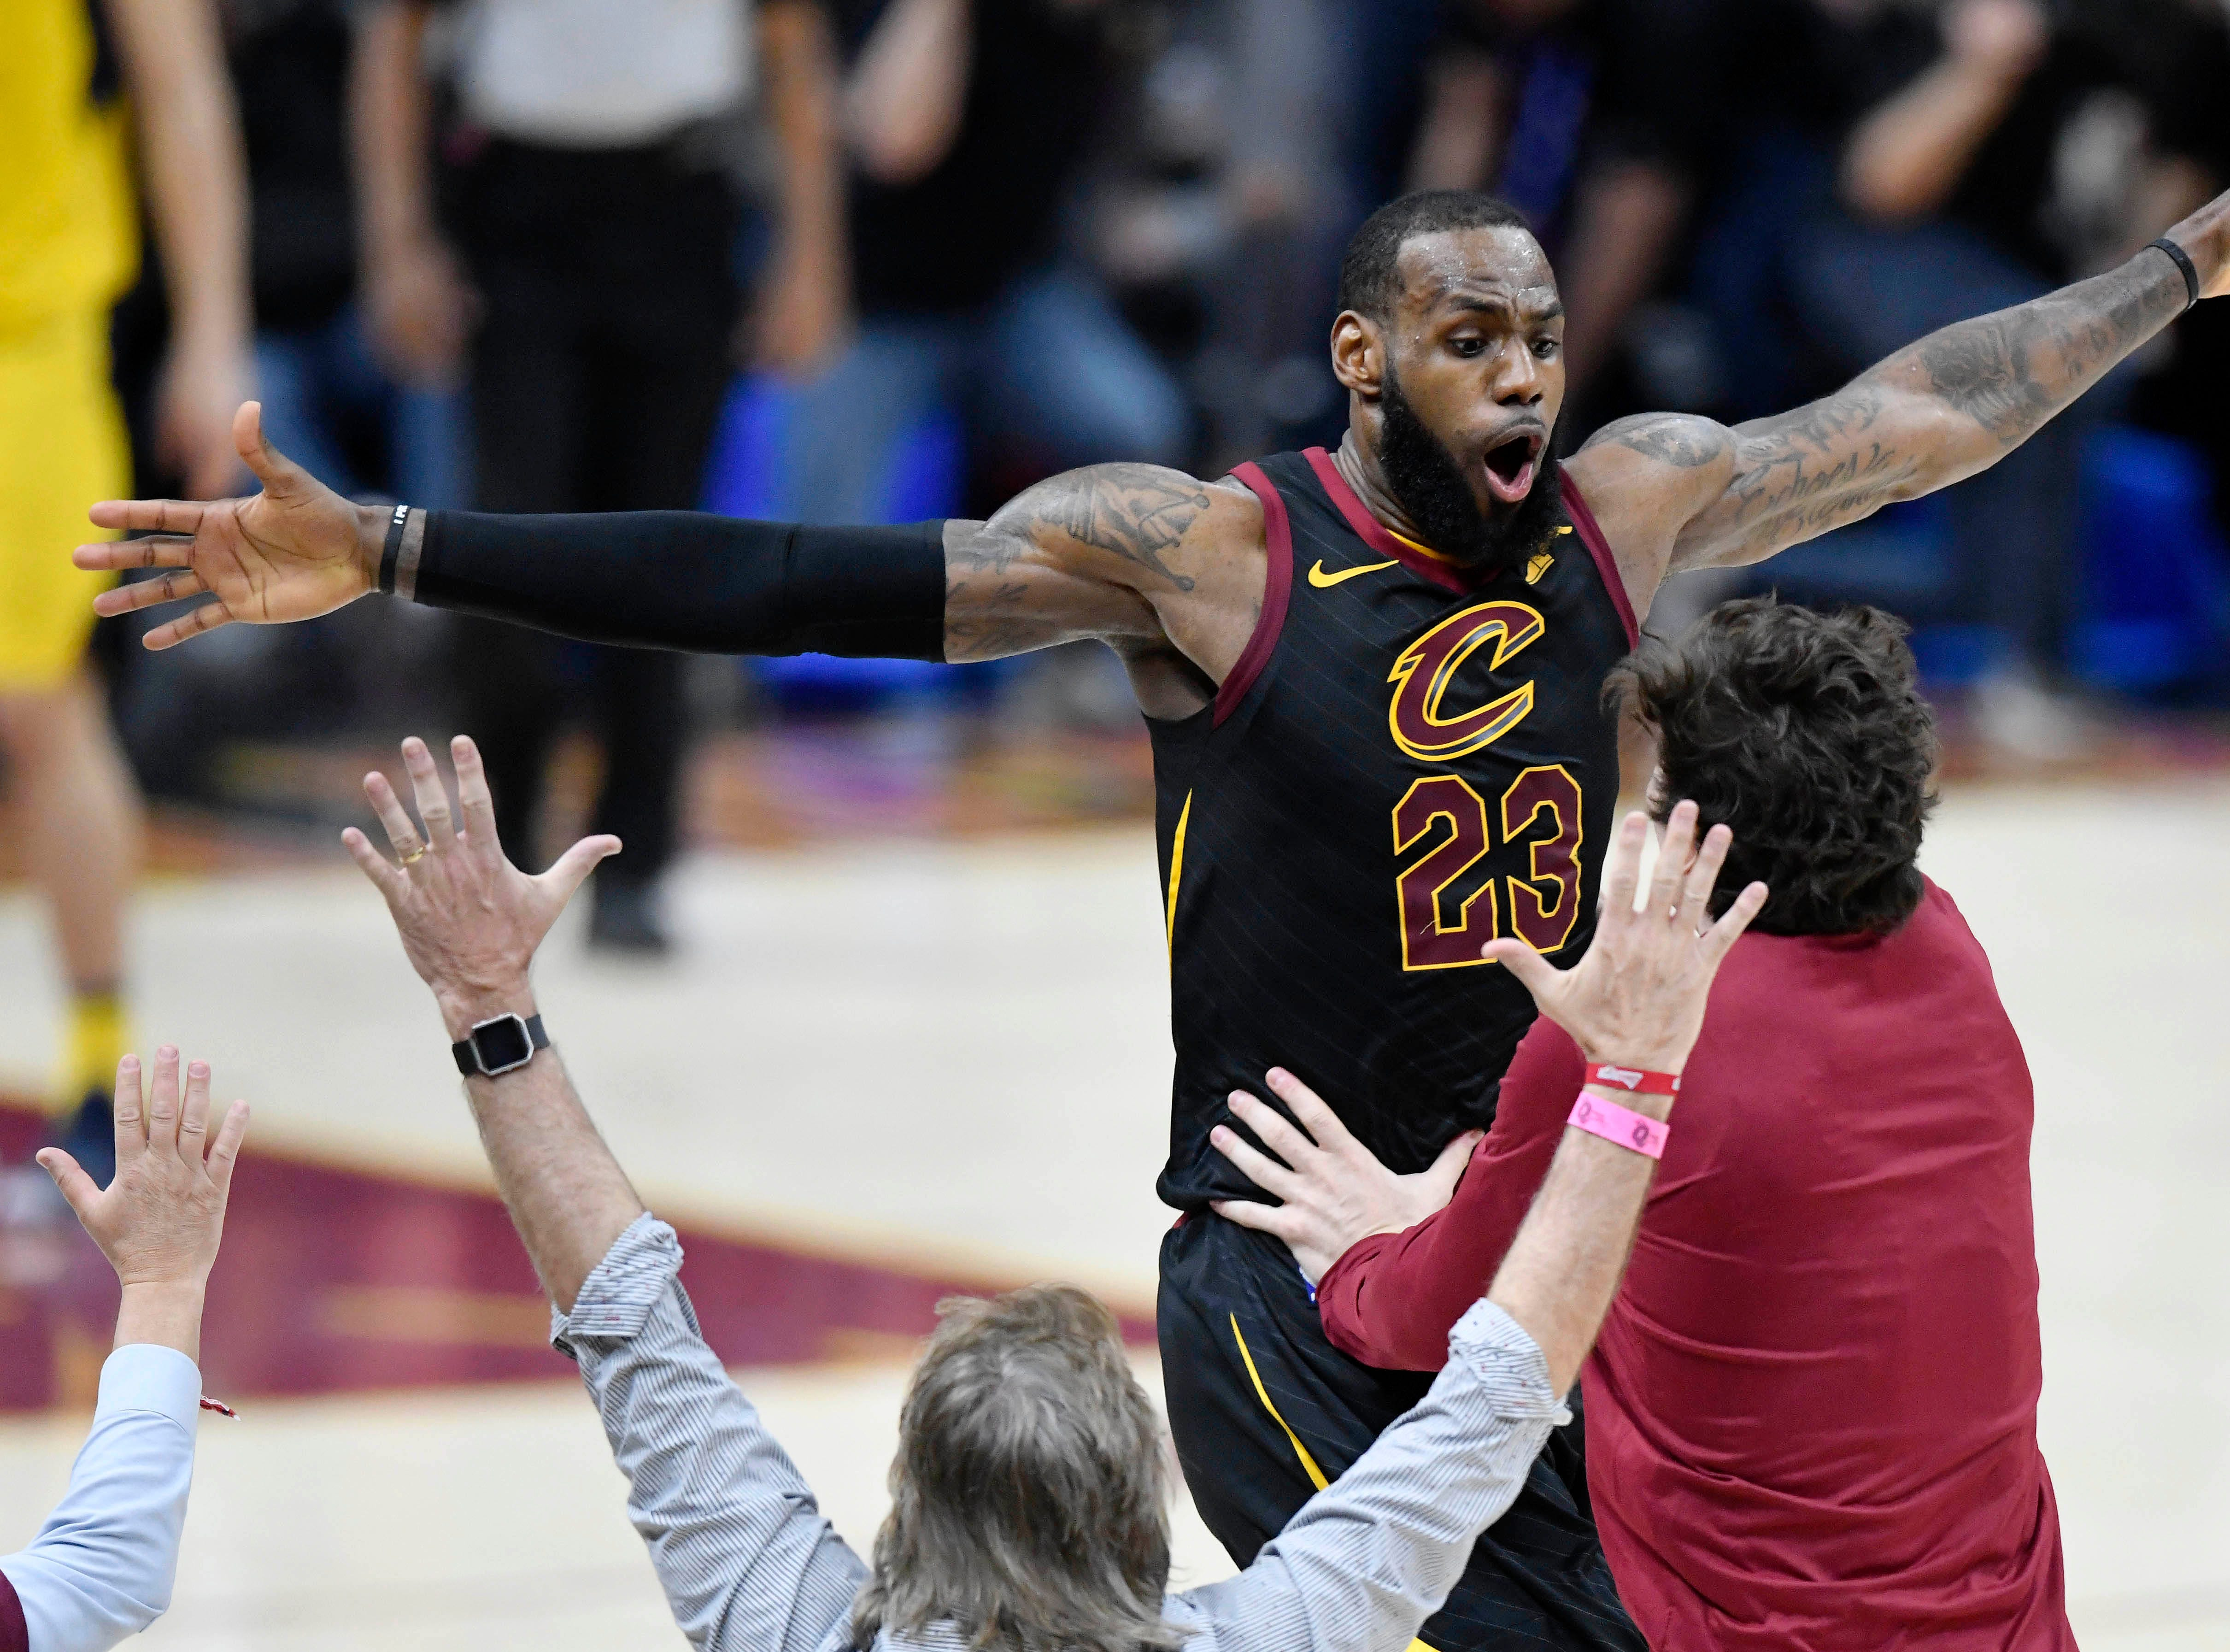 April 25: Cleveland Cavaliers forward LeBron James (23) celebrates his game-winning 3-pointer in Game 5 of a first-round series against the Indiana Pacers.